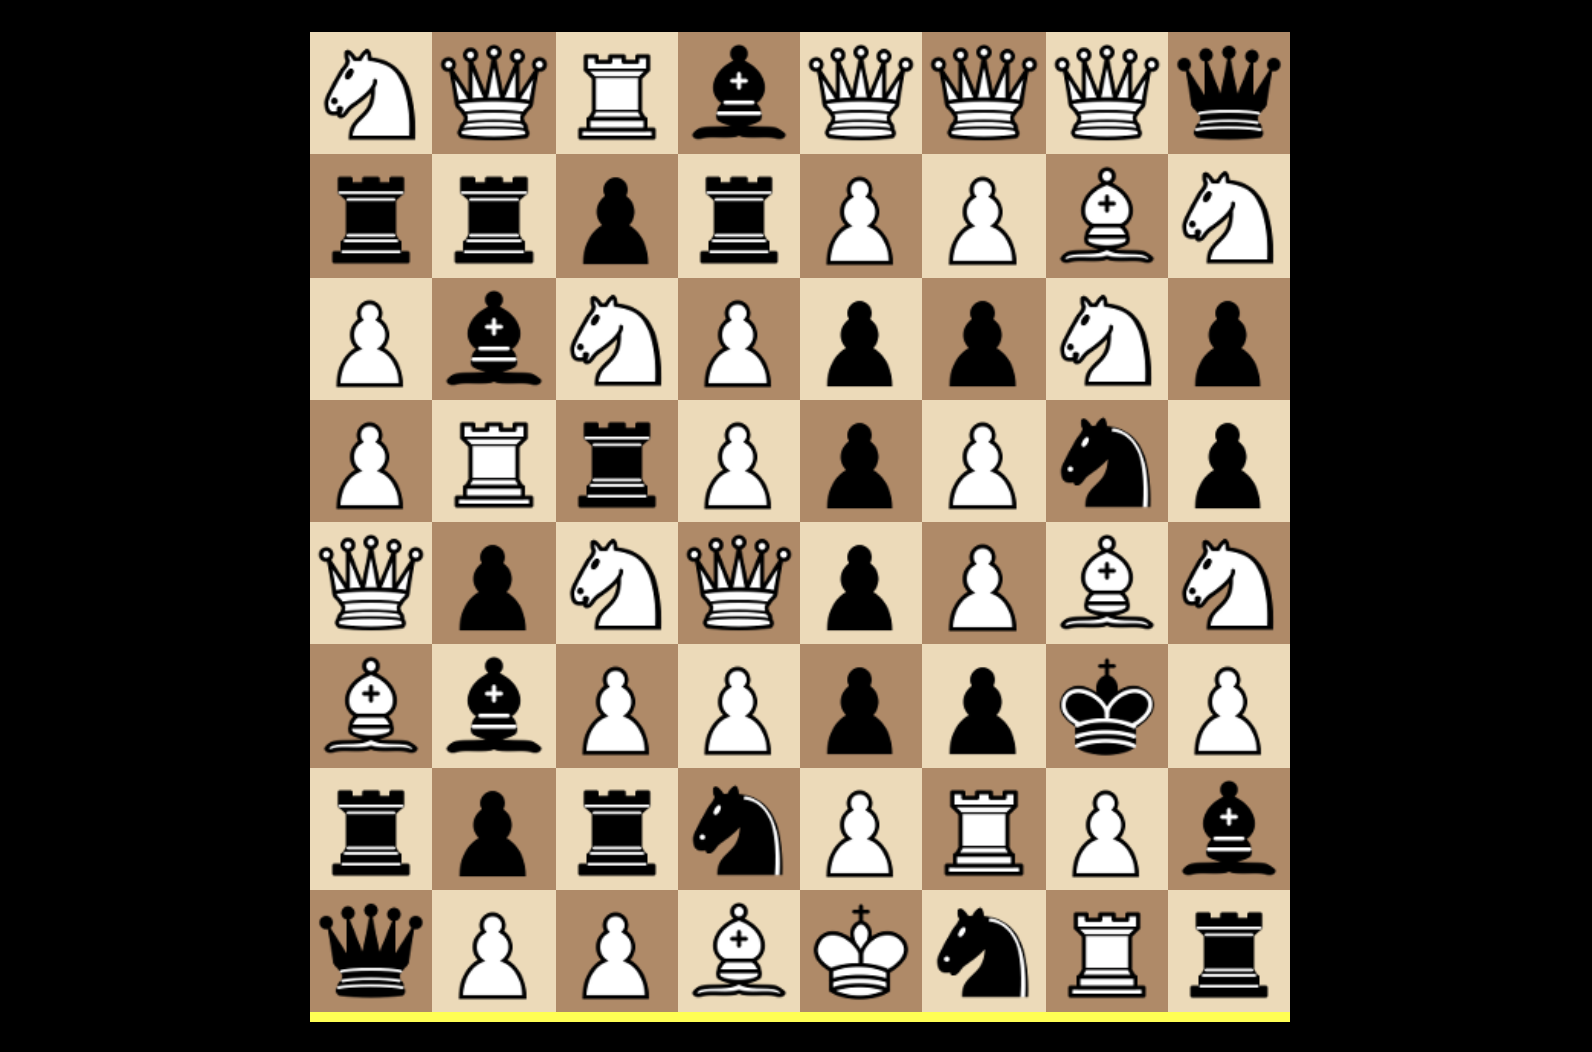 Jumbling The Rules Of Chess, Eight Different Ways